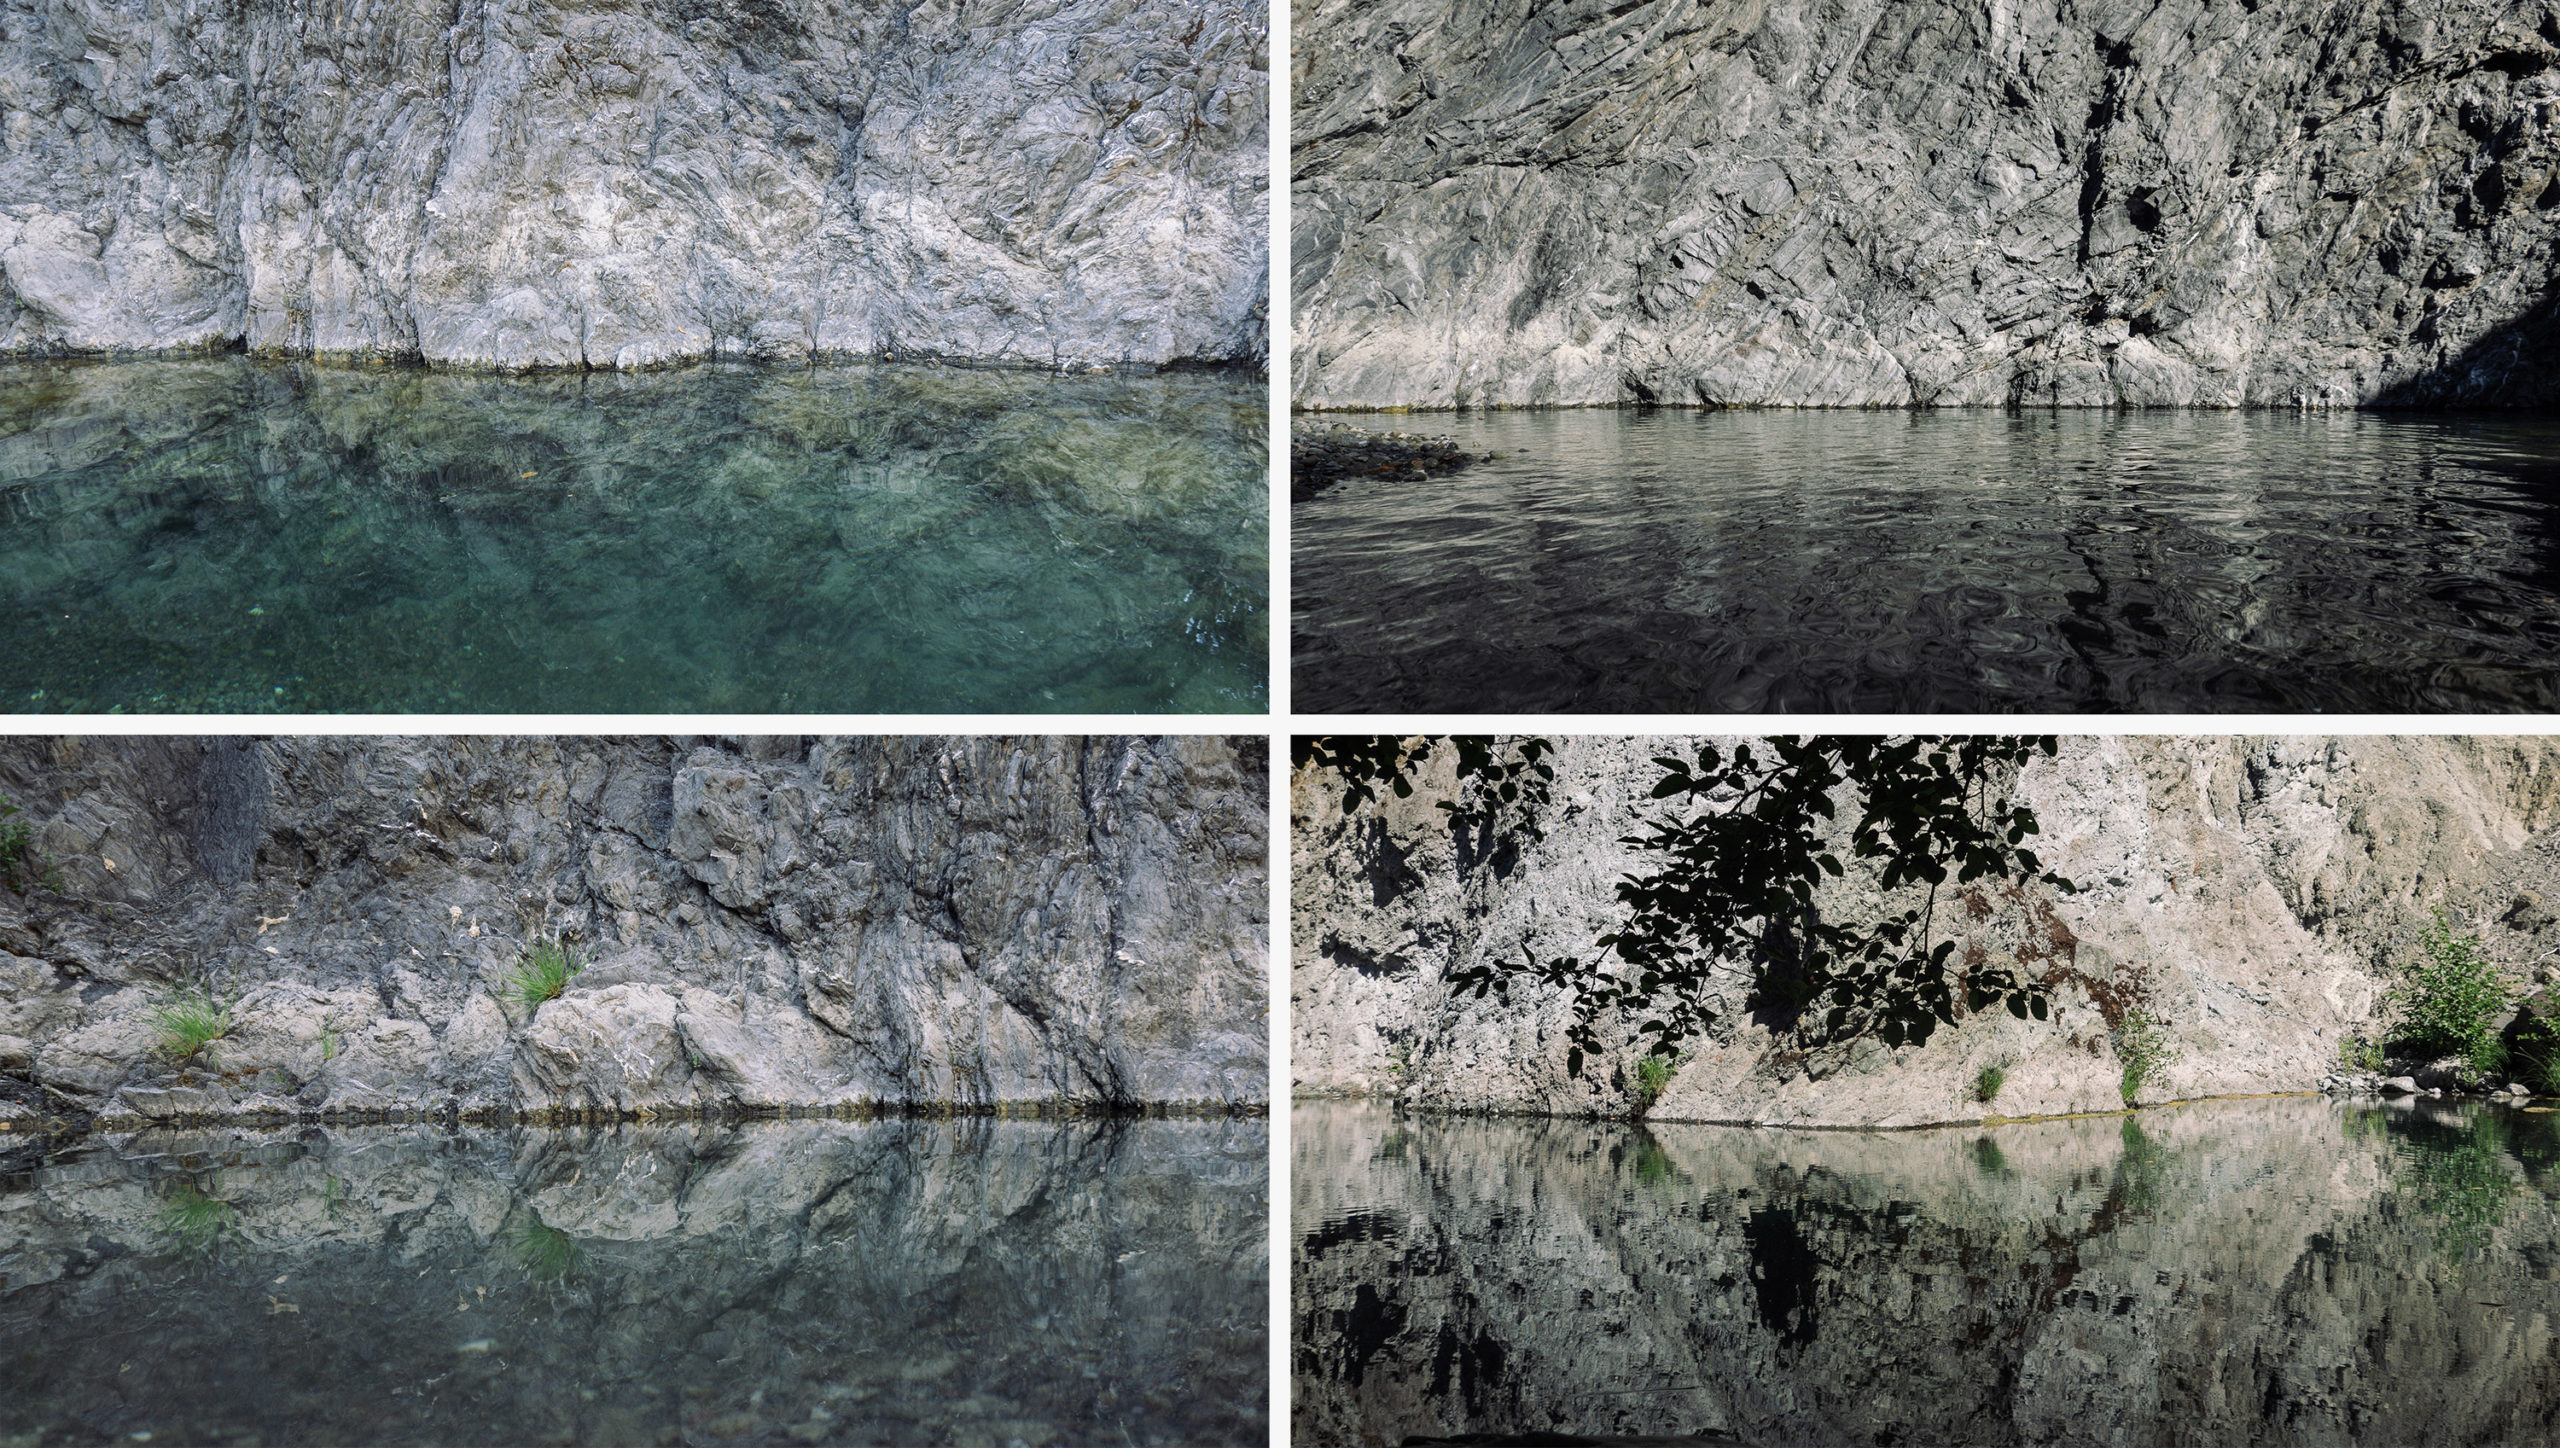 The waterline in four different photos